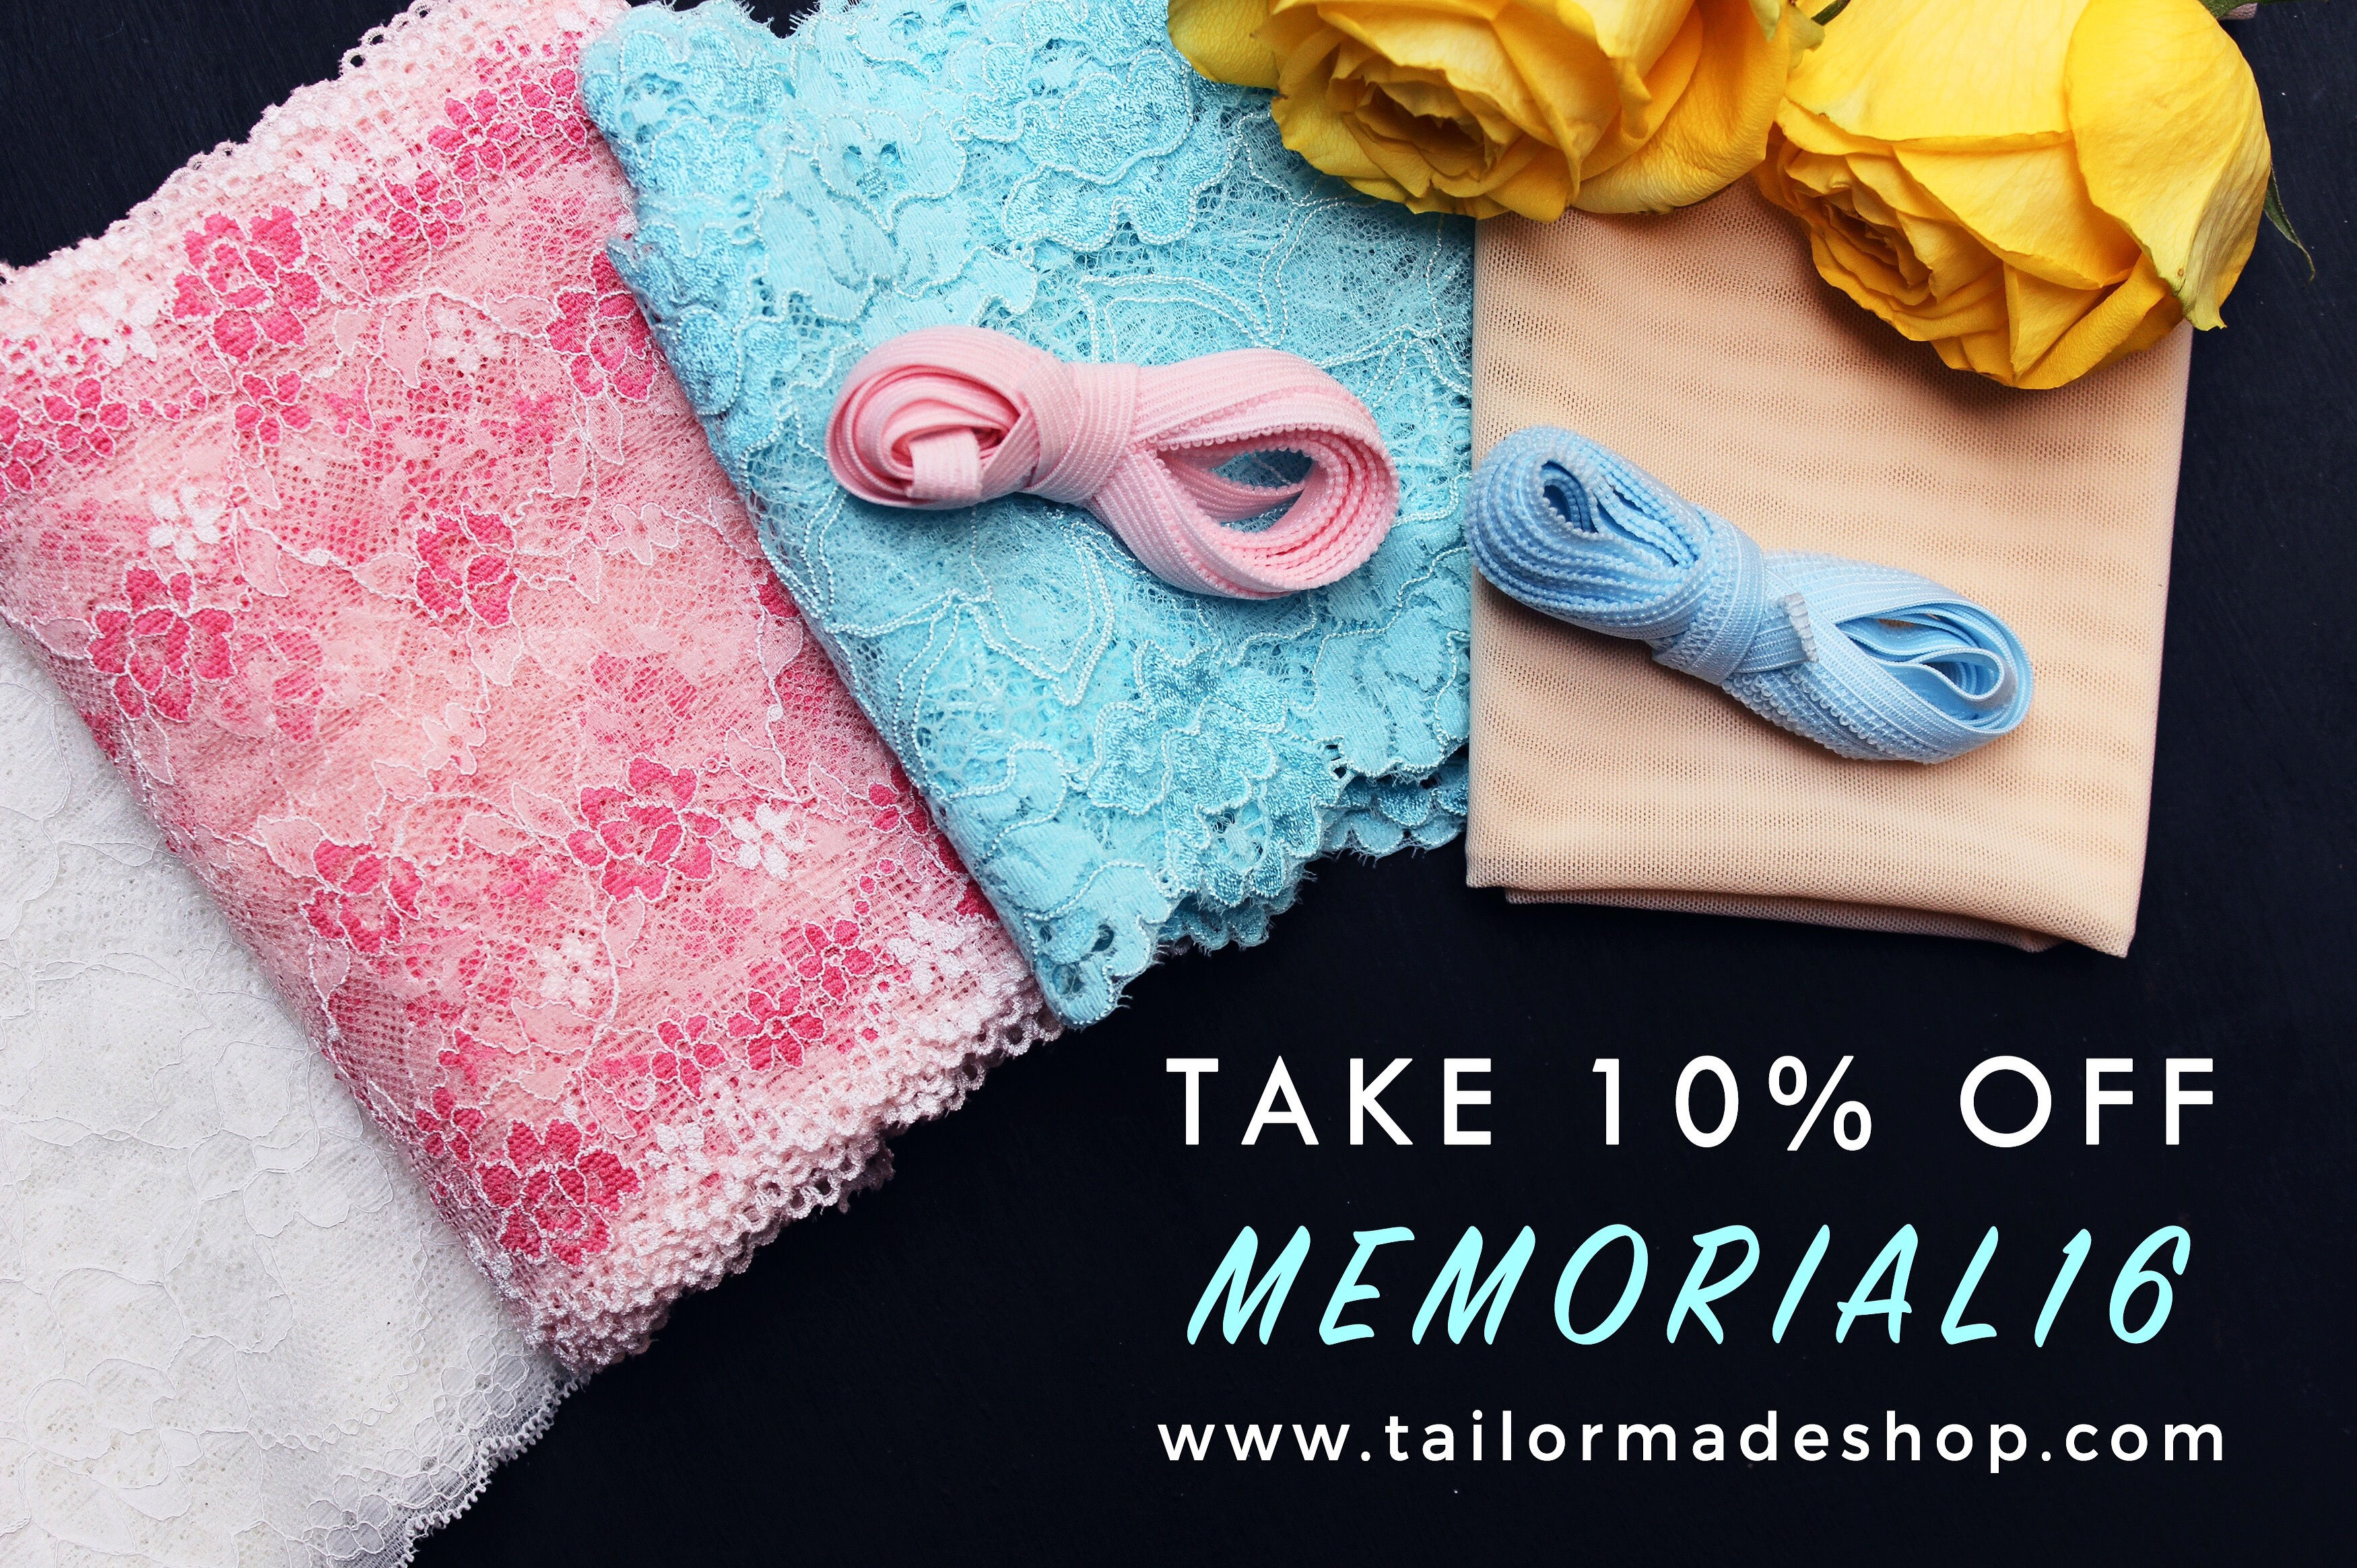 Tailor Made Shop Discount Bra Making Memorial Day Sale